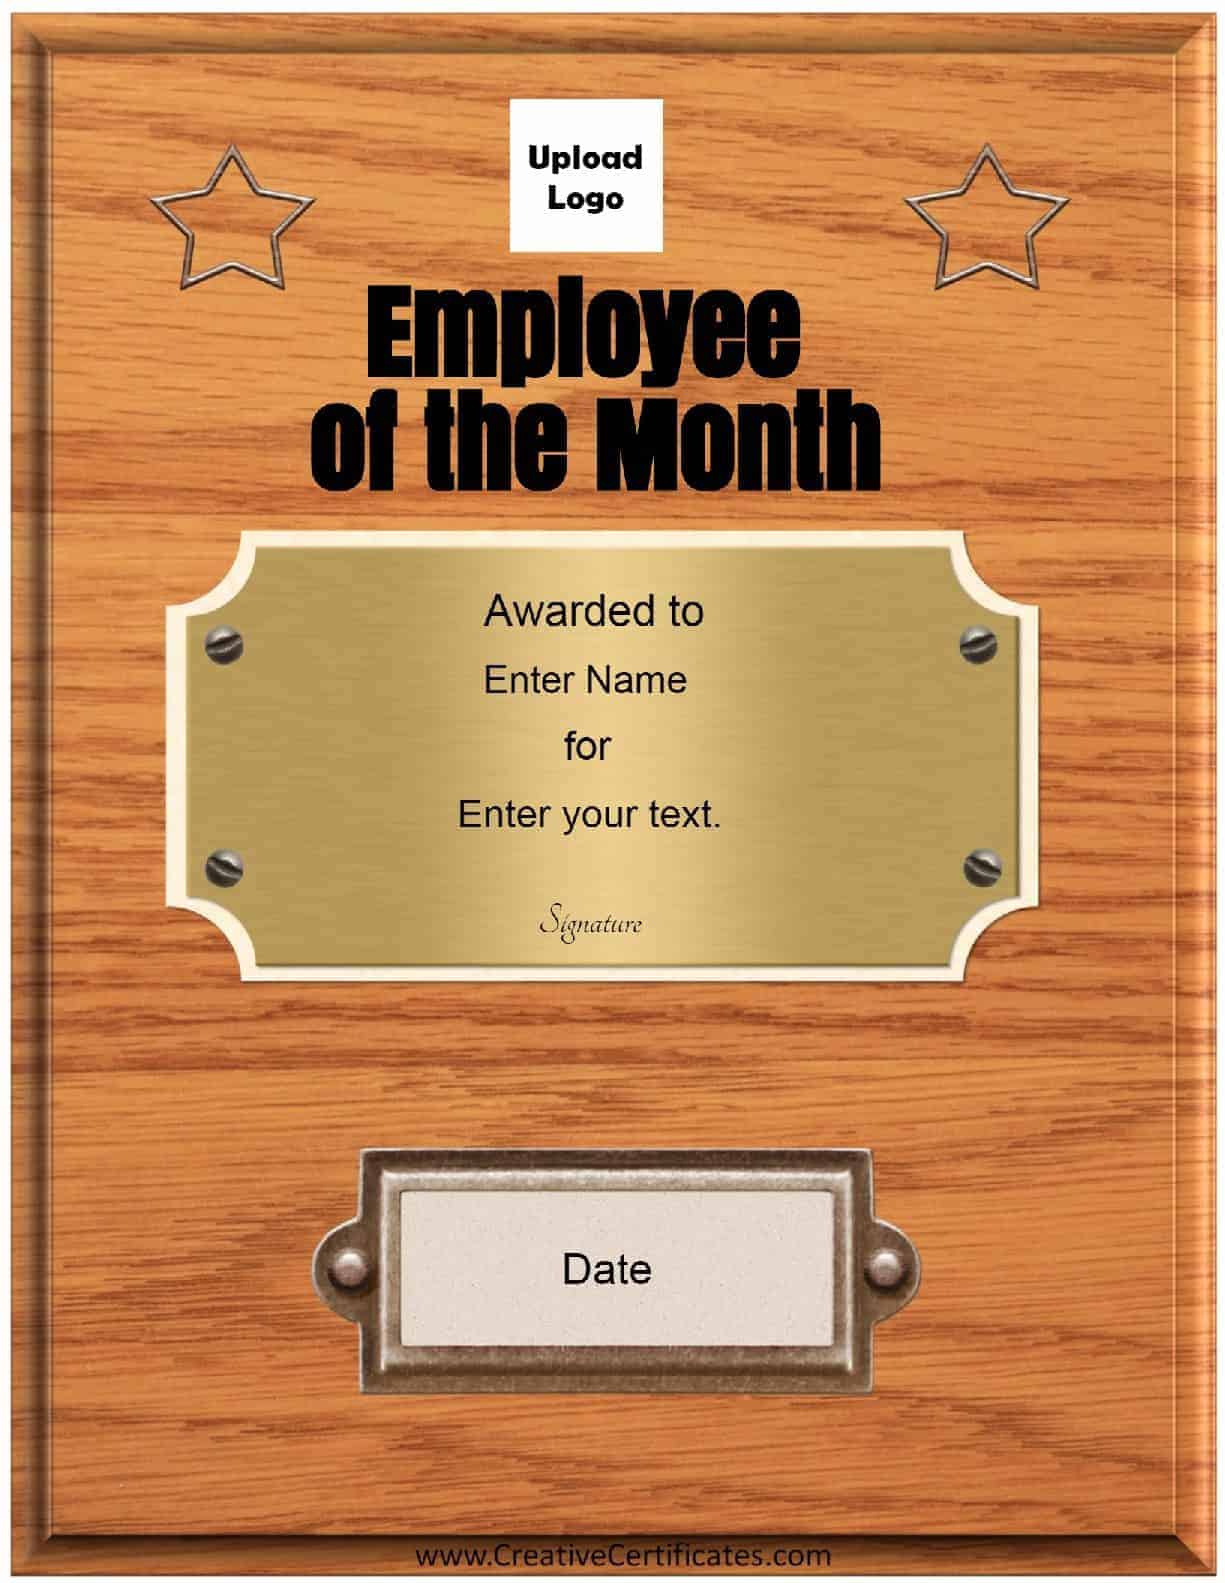 Free custom employee of the month certificate since all text can be changed you can use these certificates for any purpose such as employee of the week employee of the year staff of the month pronofoot35fo Image collections